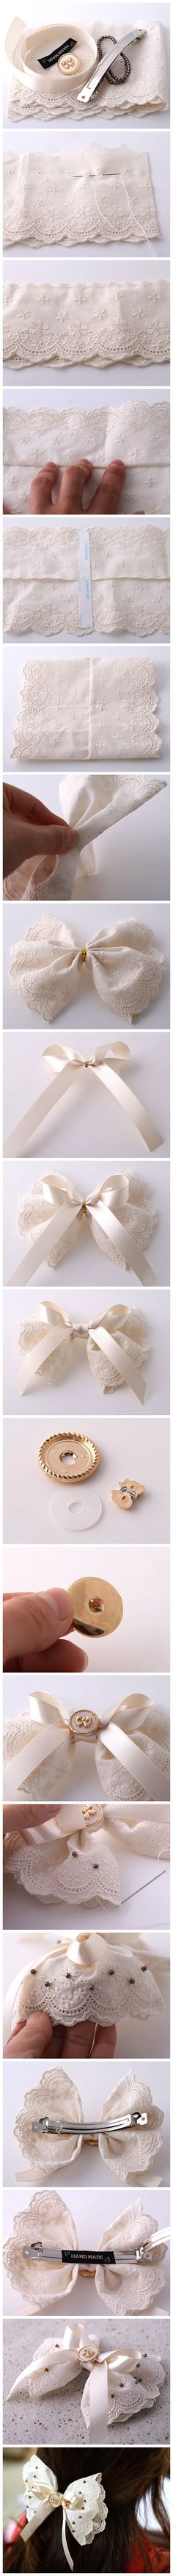 DIY Cute Bow: